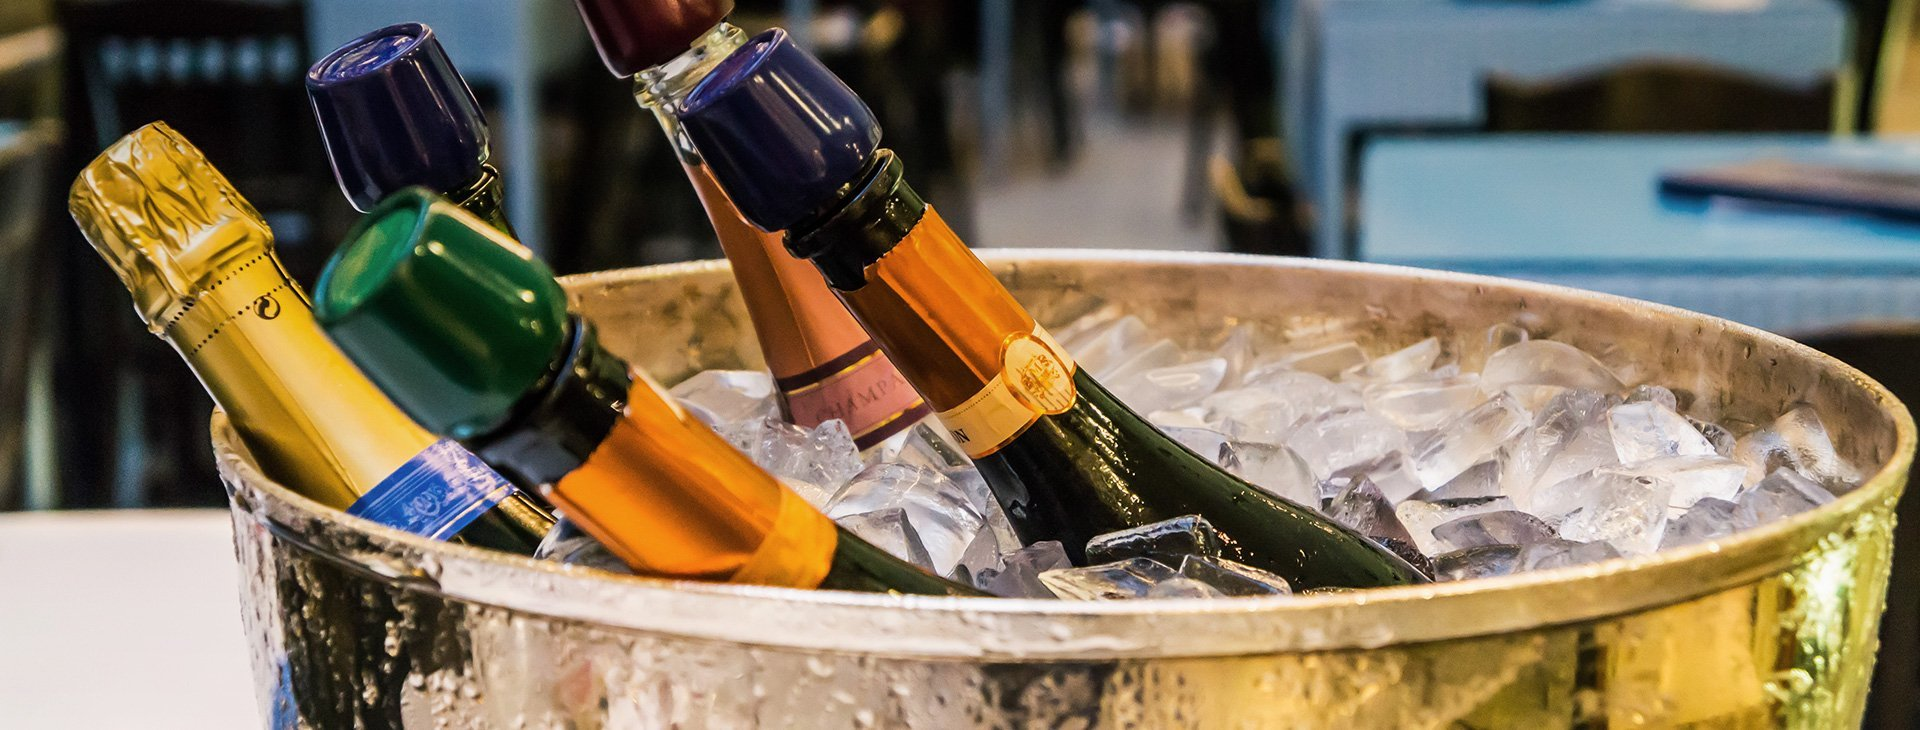 dus_store_champagner_galerie_01